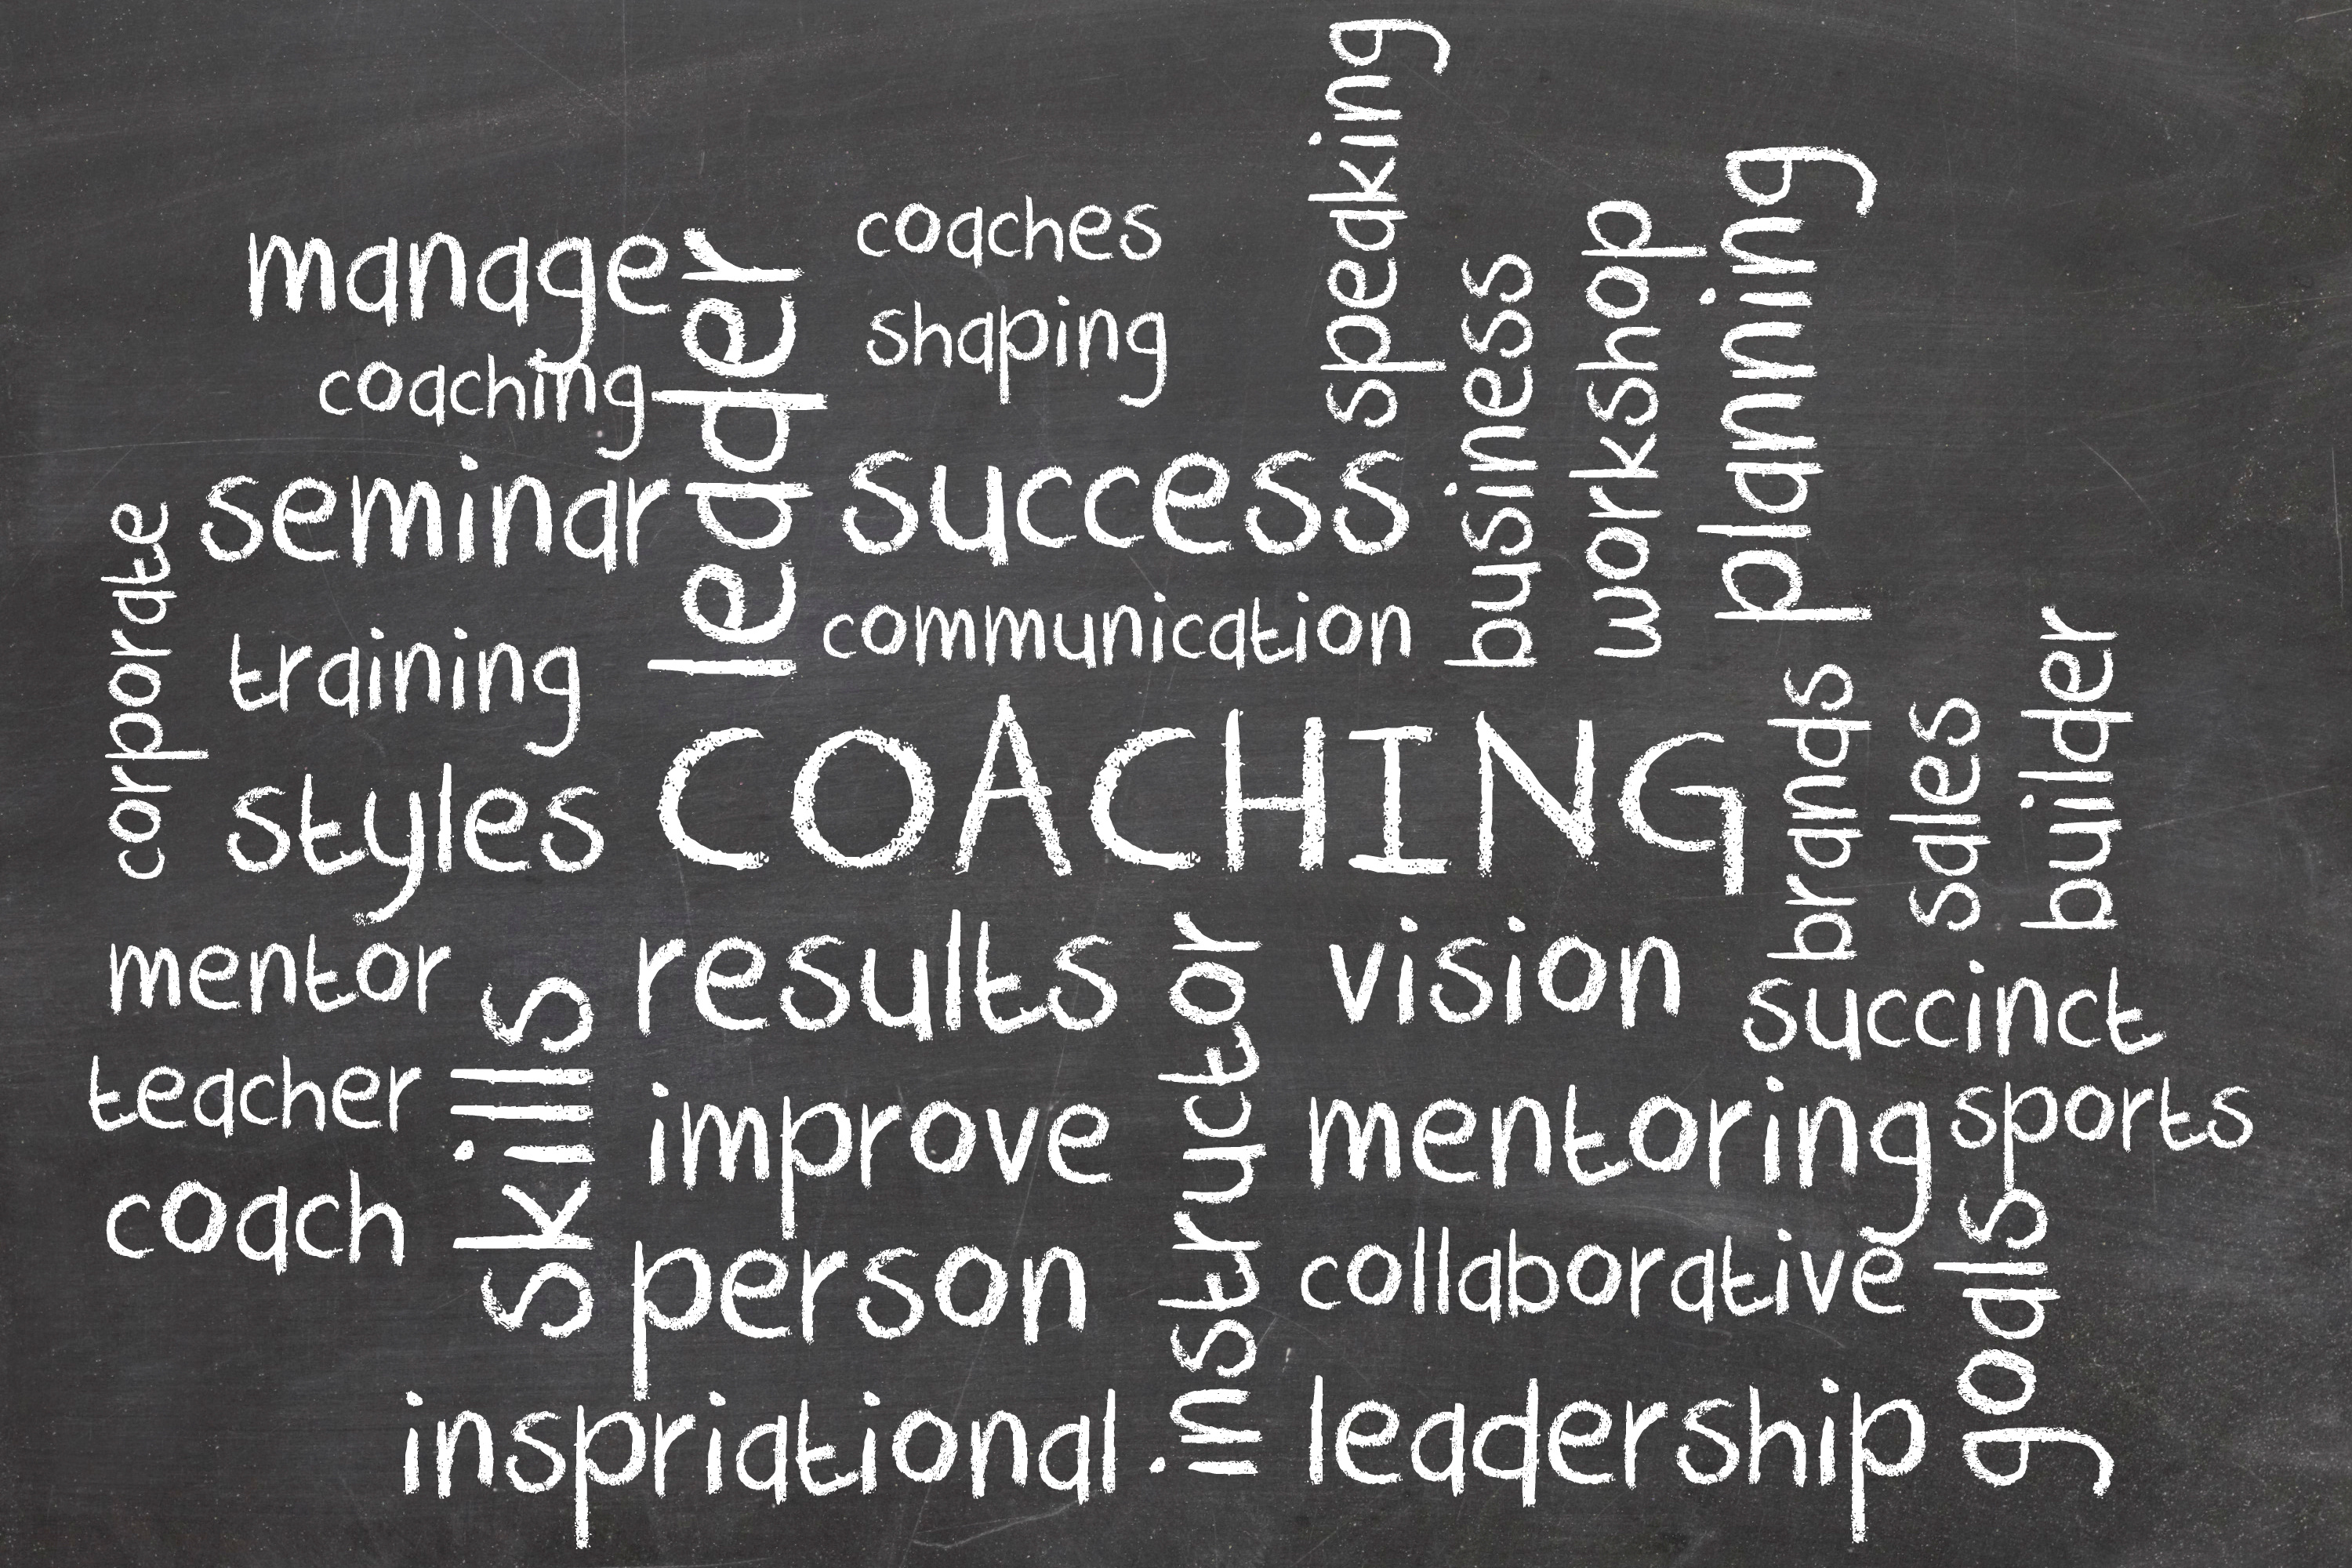 Coach—AND—Mentor